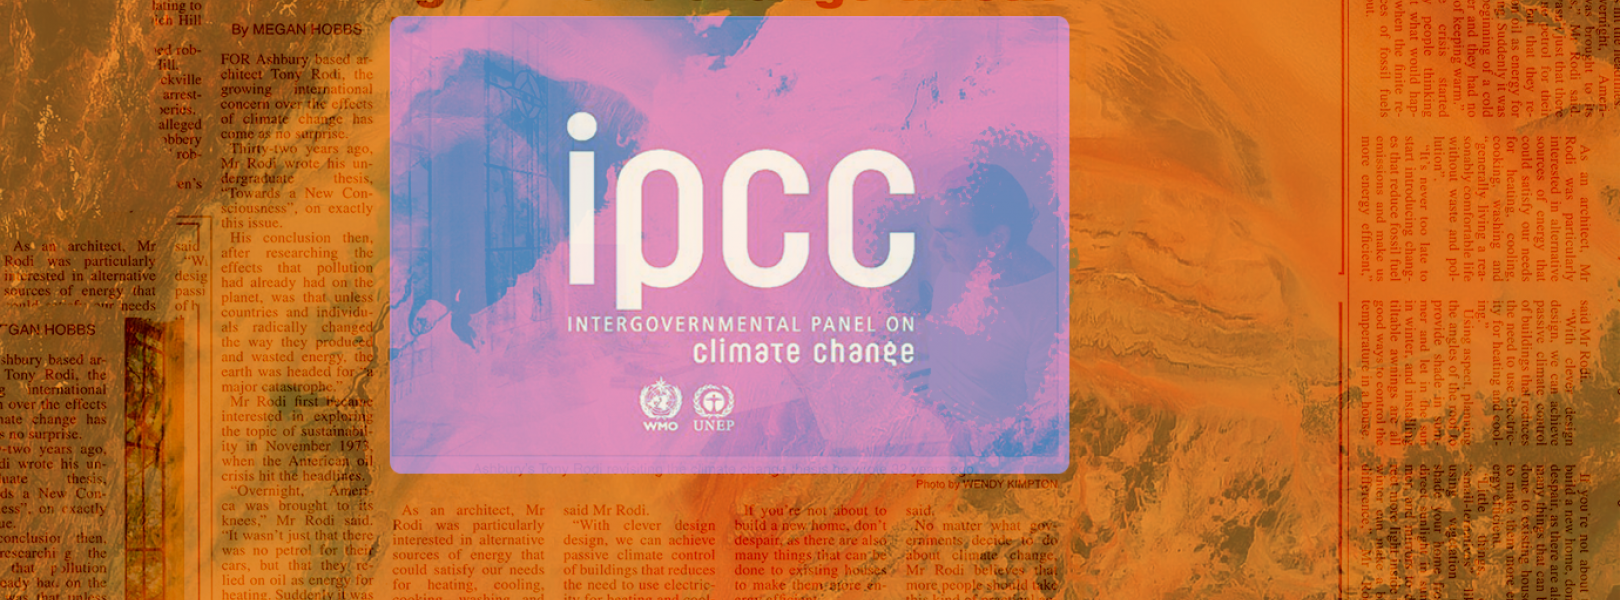 How the U.S. should cover the IPCC climate report